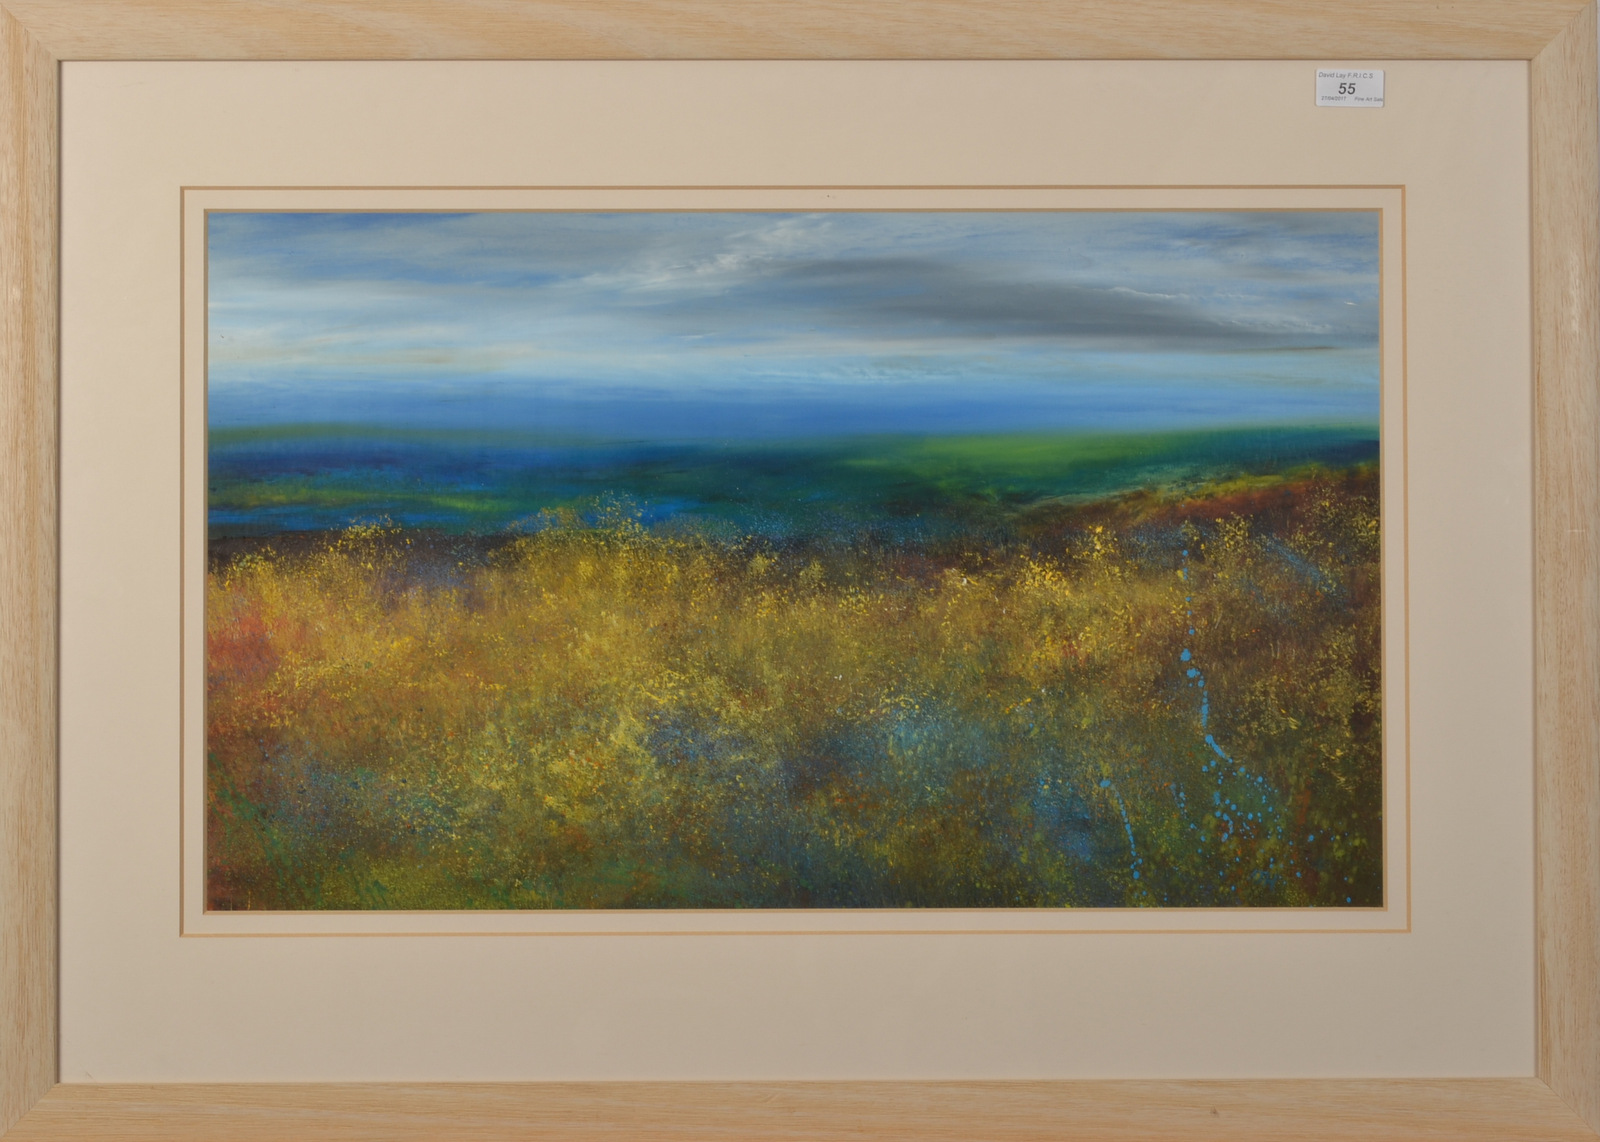 Lot 55 - AMANDA HOSKIN Cornish Moorland Oil on board Signed Titled and dated on the back 2002 40 x 68cm